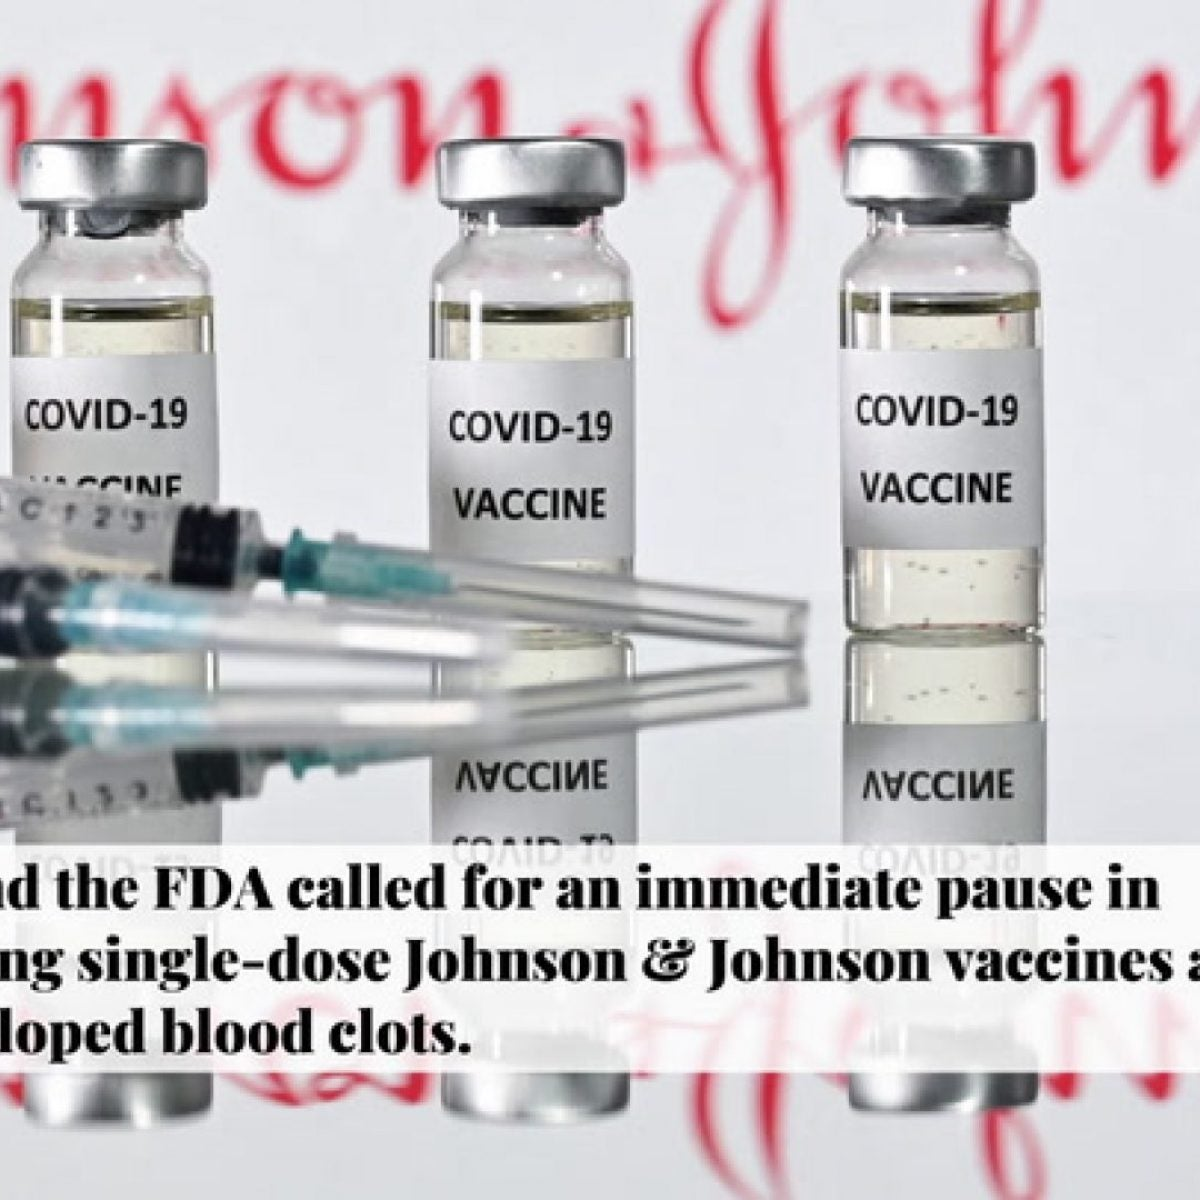 4 Things To Know About the CDC and FDA Pausing Johnson & Johnson Vaccinations